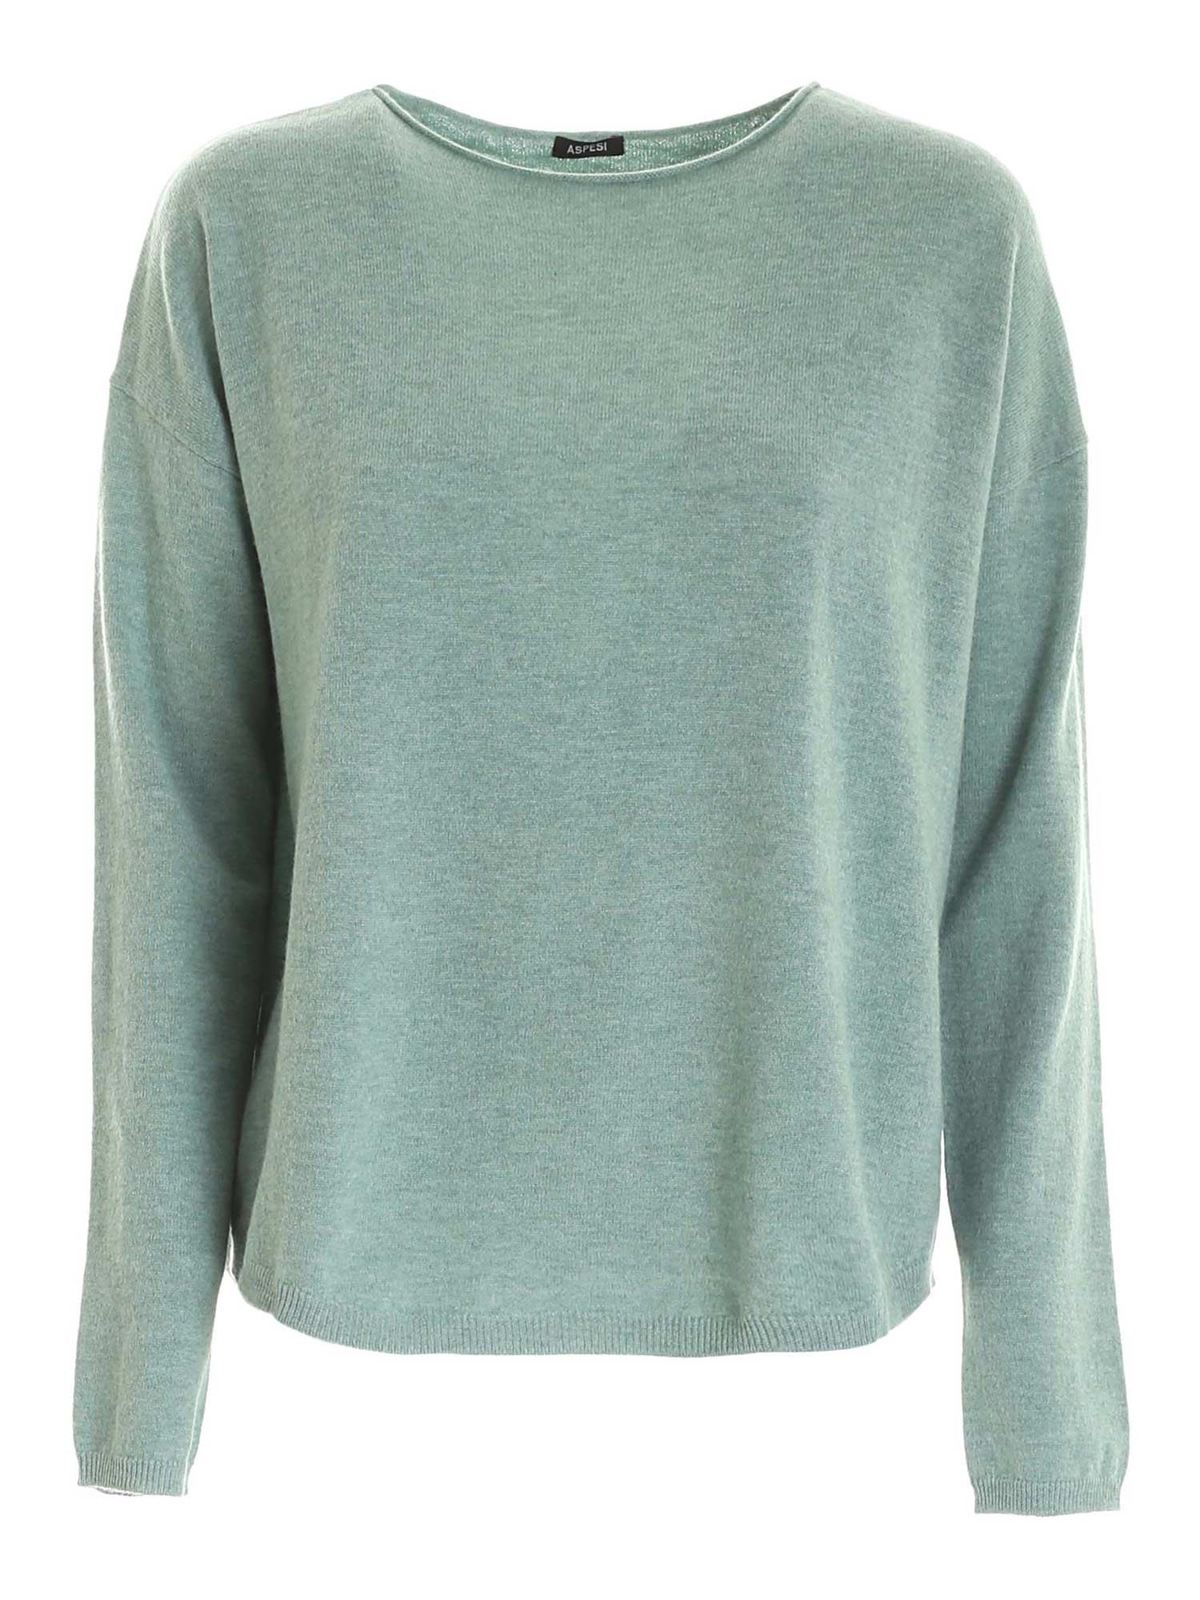 Aspesi WOOL PULLOVER IN SAGE GREEN